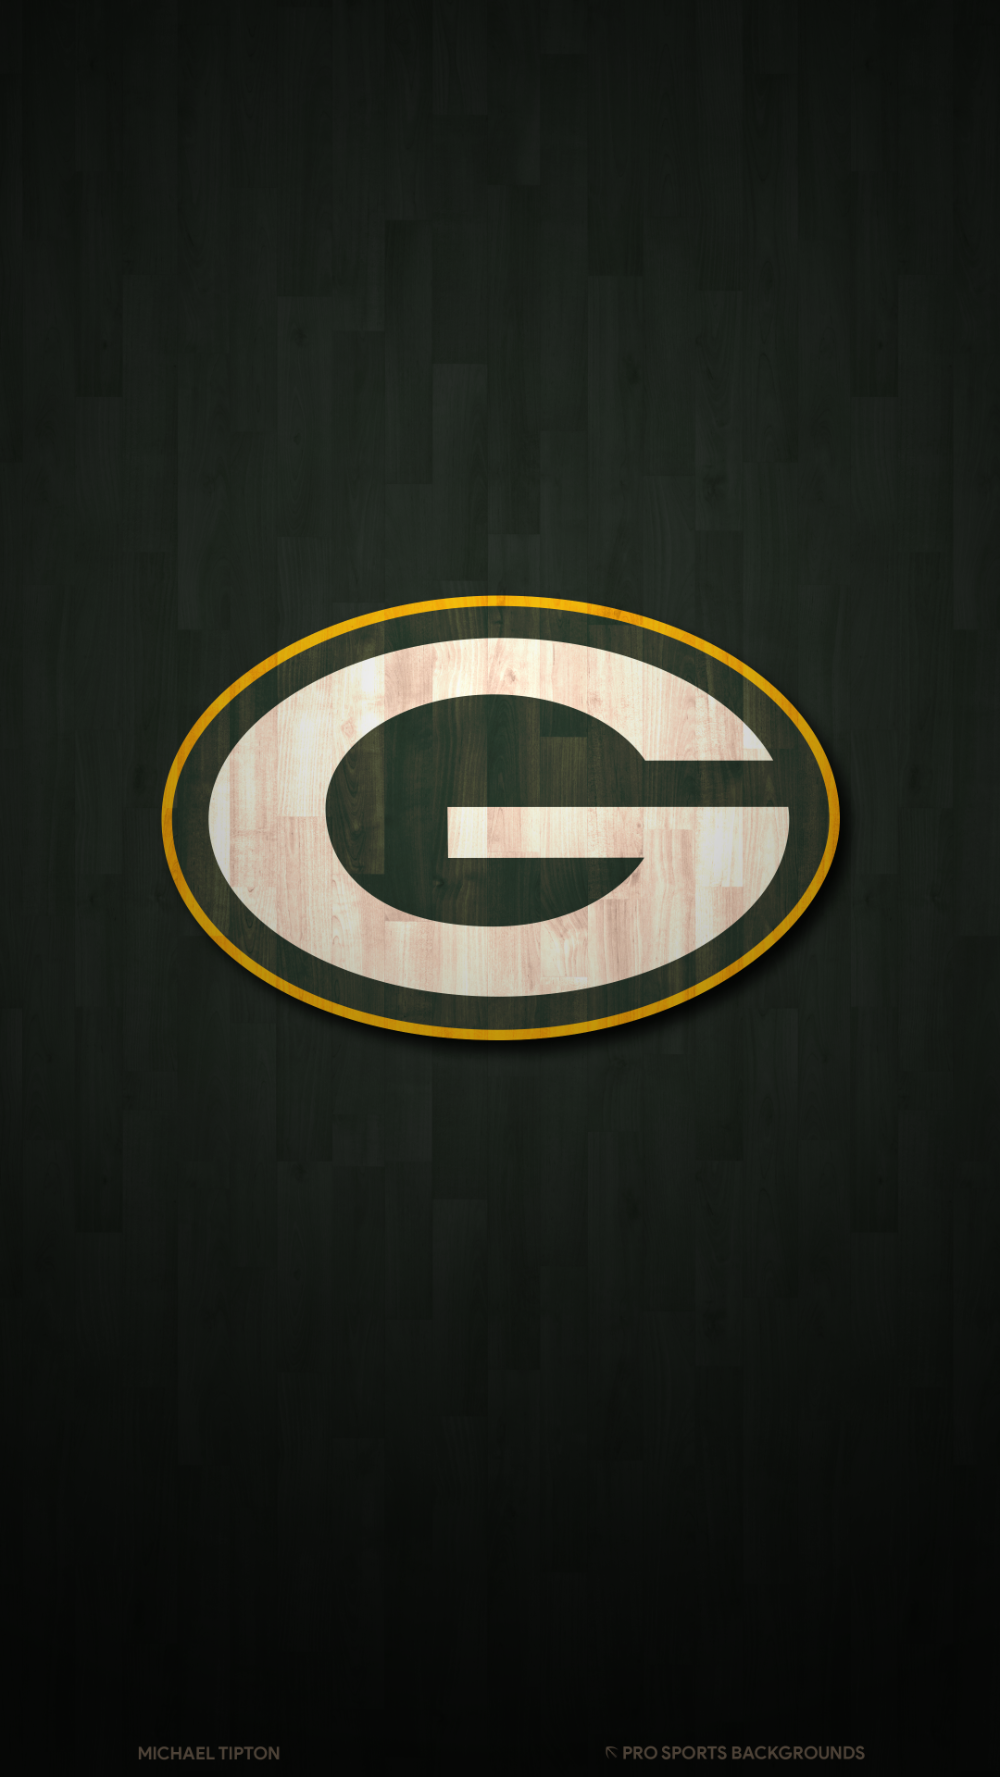 2019 Green Bay Packers Wallpapers Pro Sports Backgrounds Green Bay Packers Wallpaper Green Bay Packers Logo Green Bay Packers Merchandise